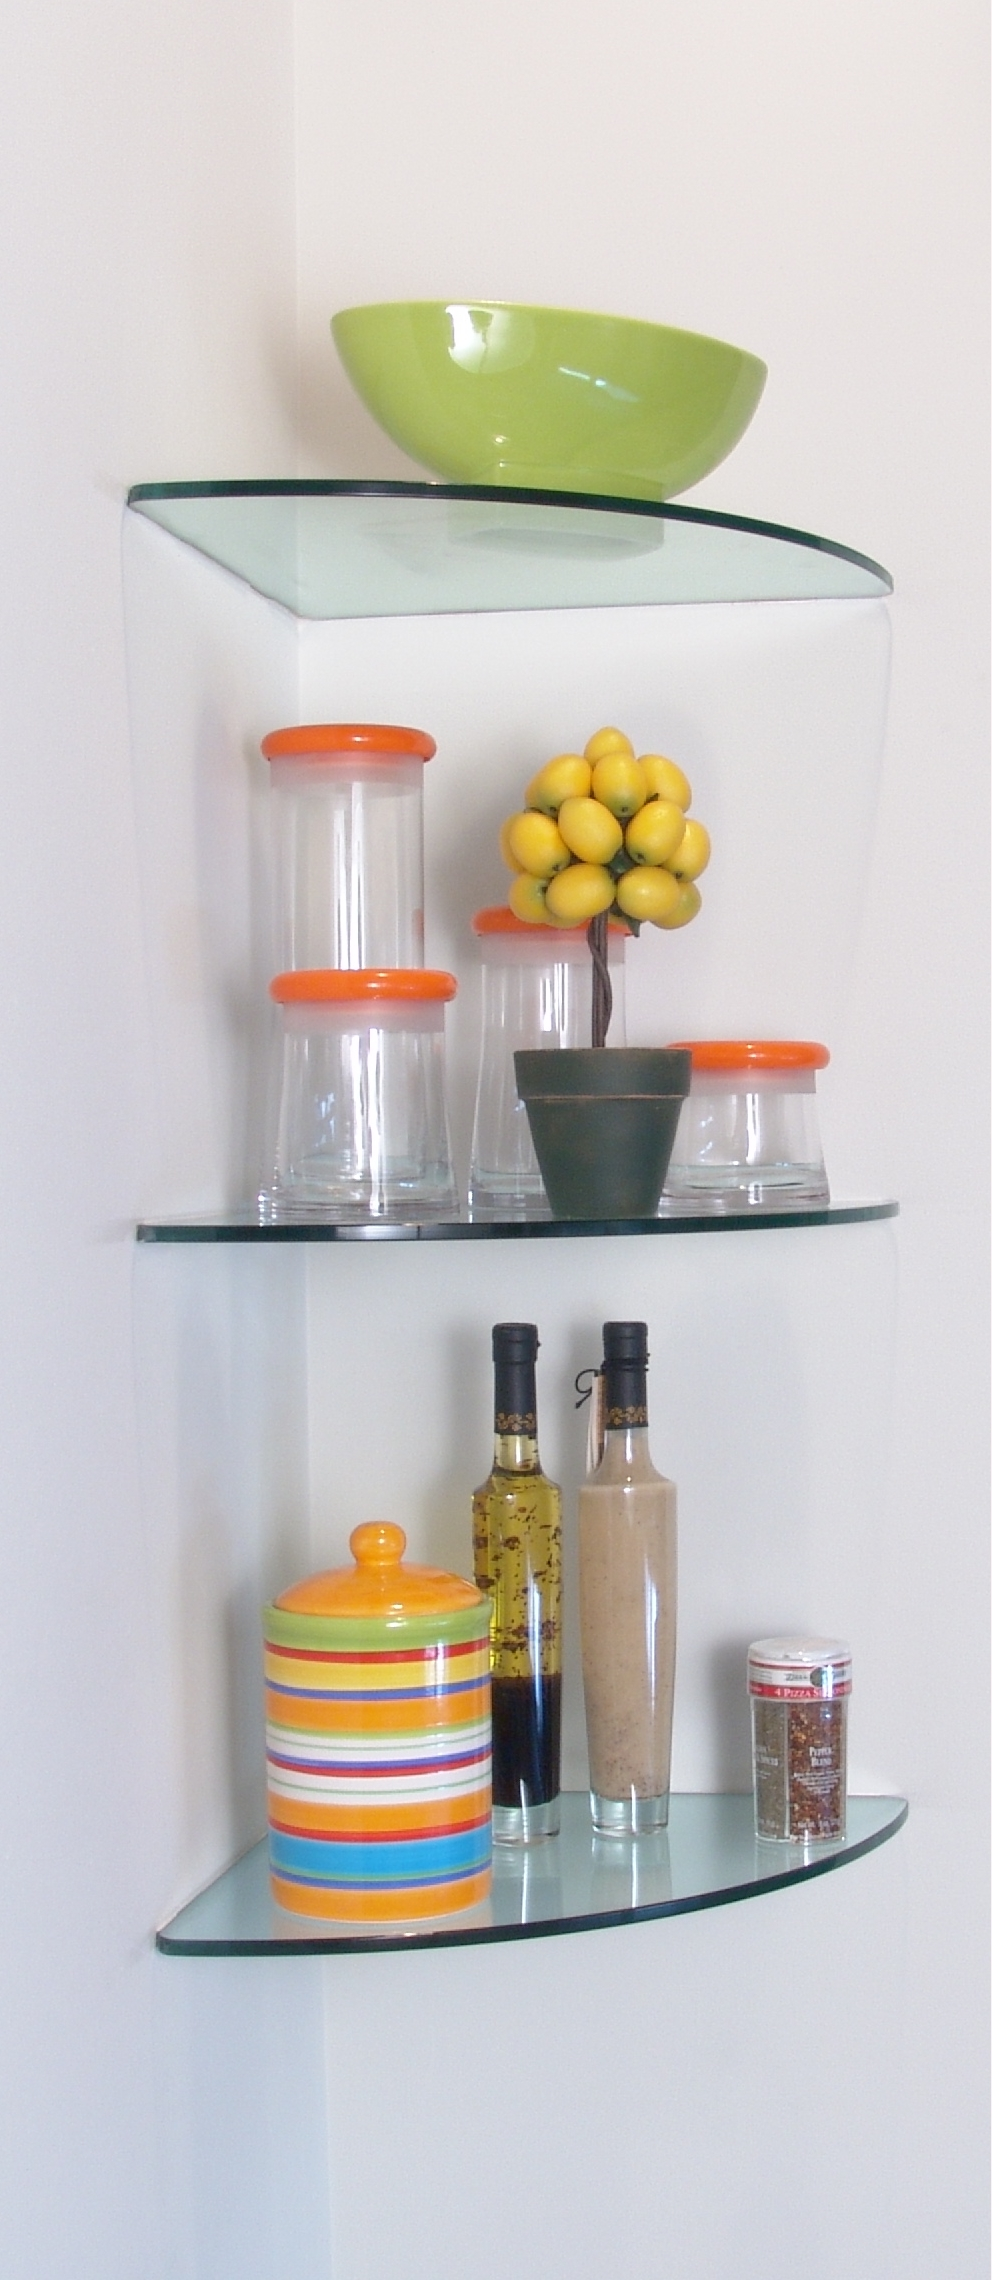 excellent glass corner shelves give elegant look your house interior one four helves for some utensils placed the white wall room floating shelf tall skinny metal shaped brackets